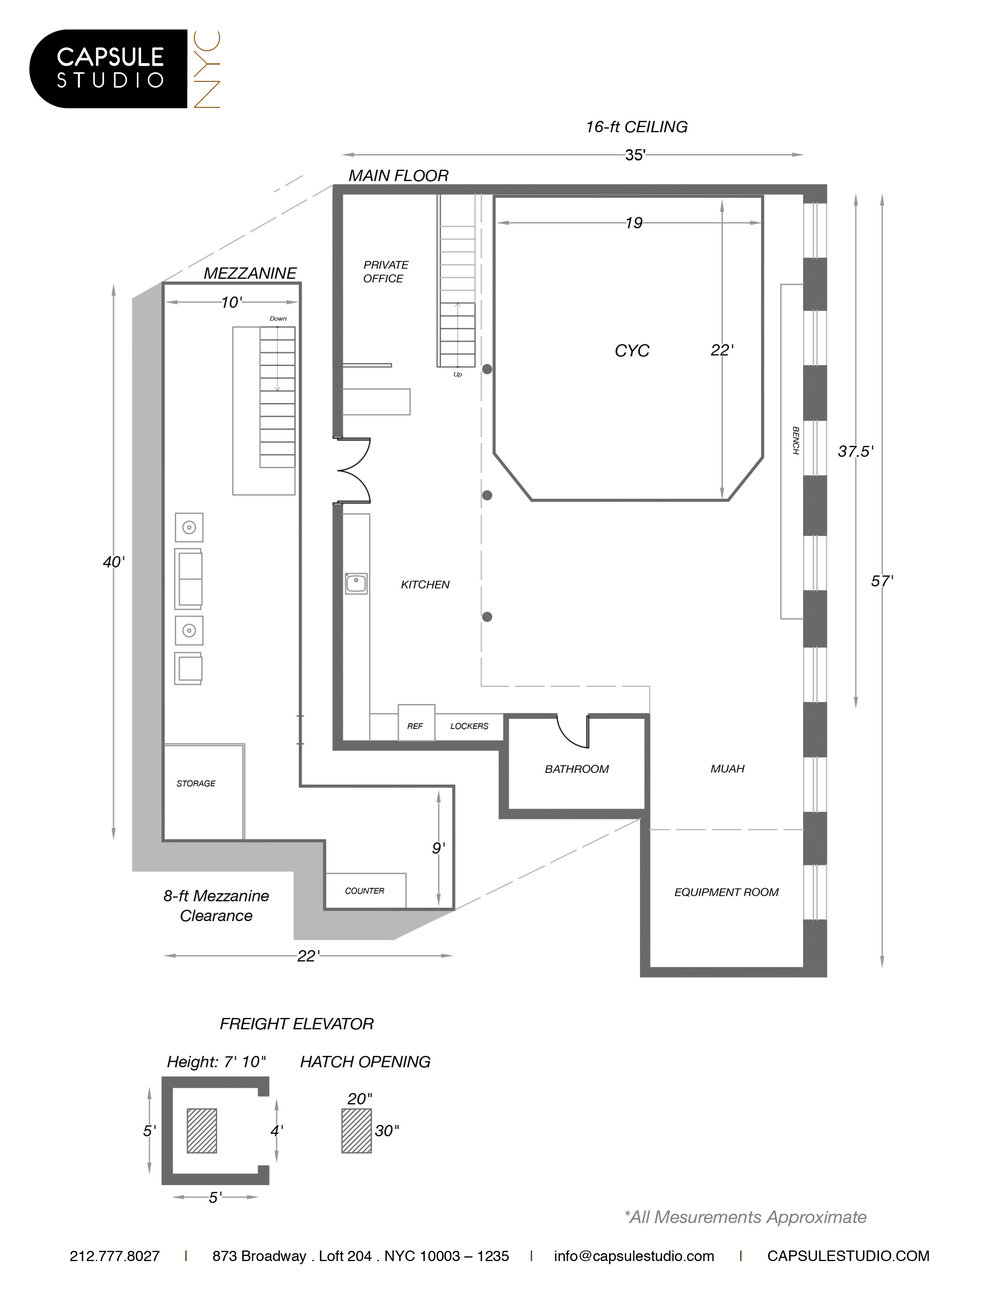 Main Floor Plan.Capsule.jpg